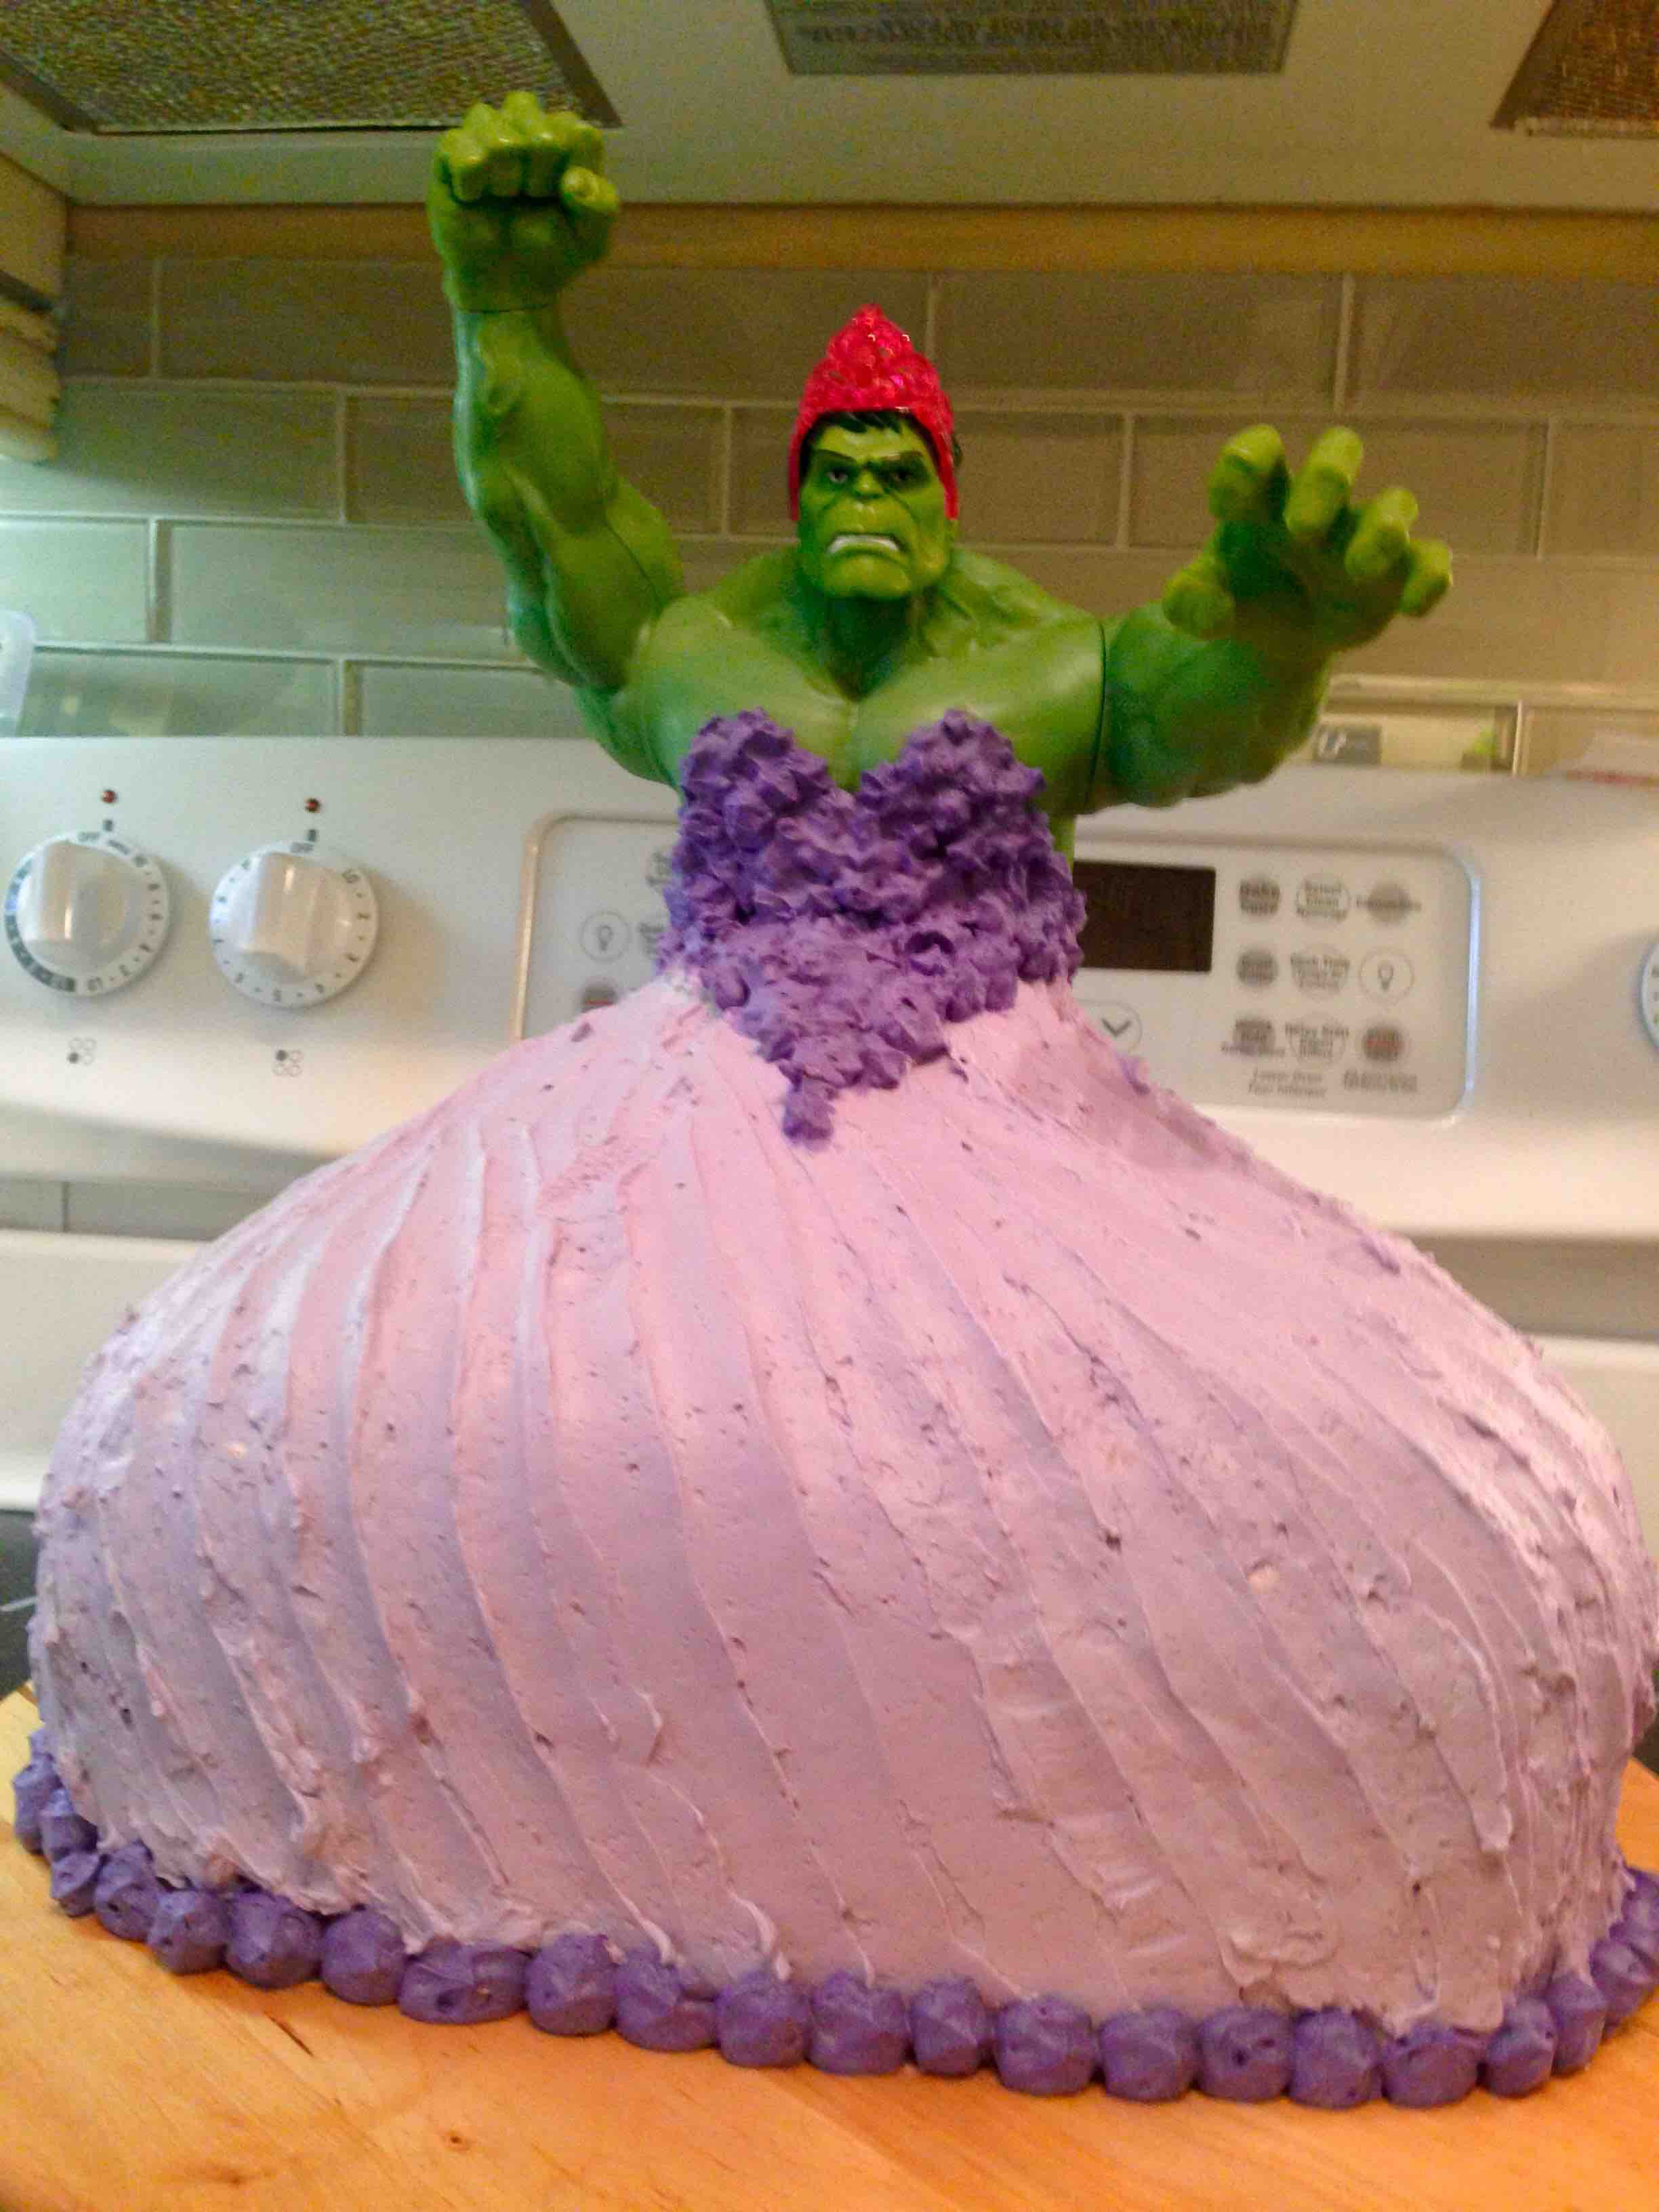 Awesome Hulk Princess Cake Smashes Gender Norms